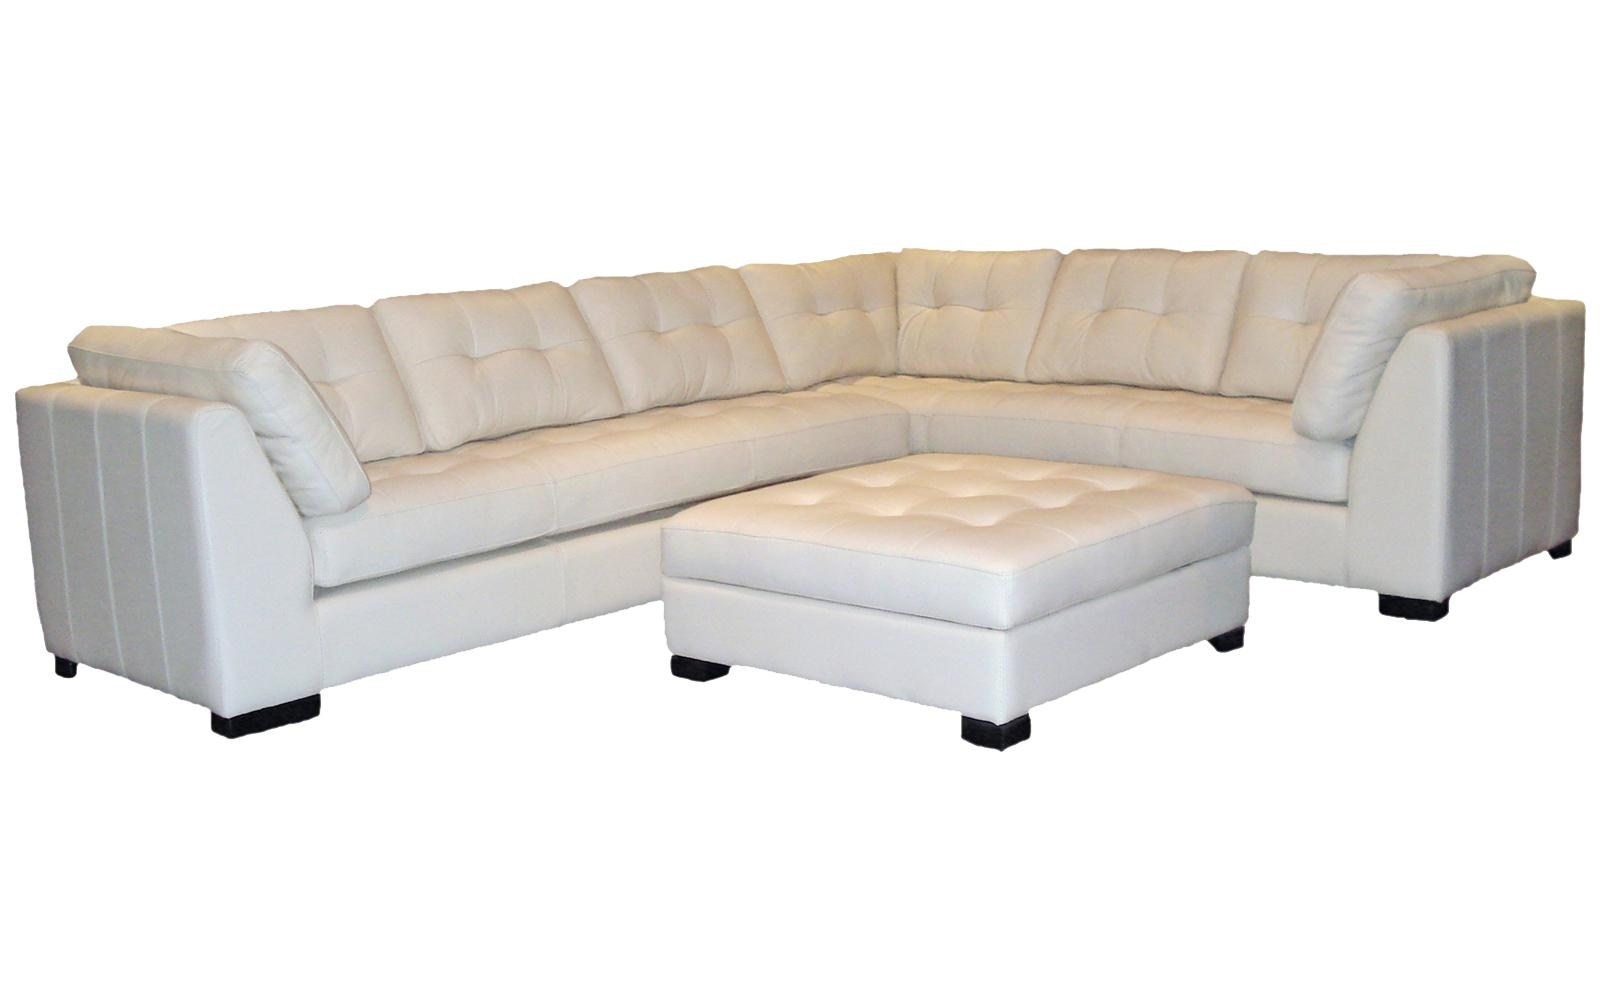 Newport Sofa Available – Omnia Leather Inside Newport Sofas (Image 12 of 20)